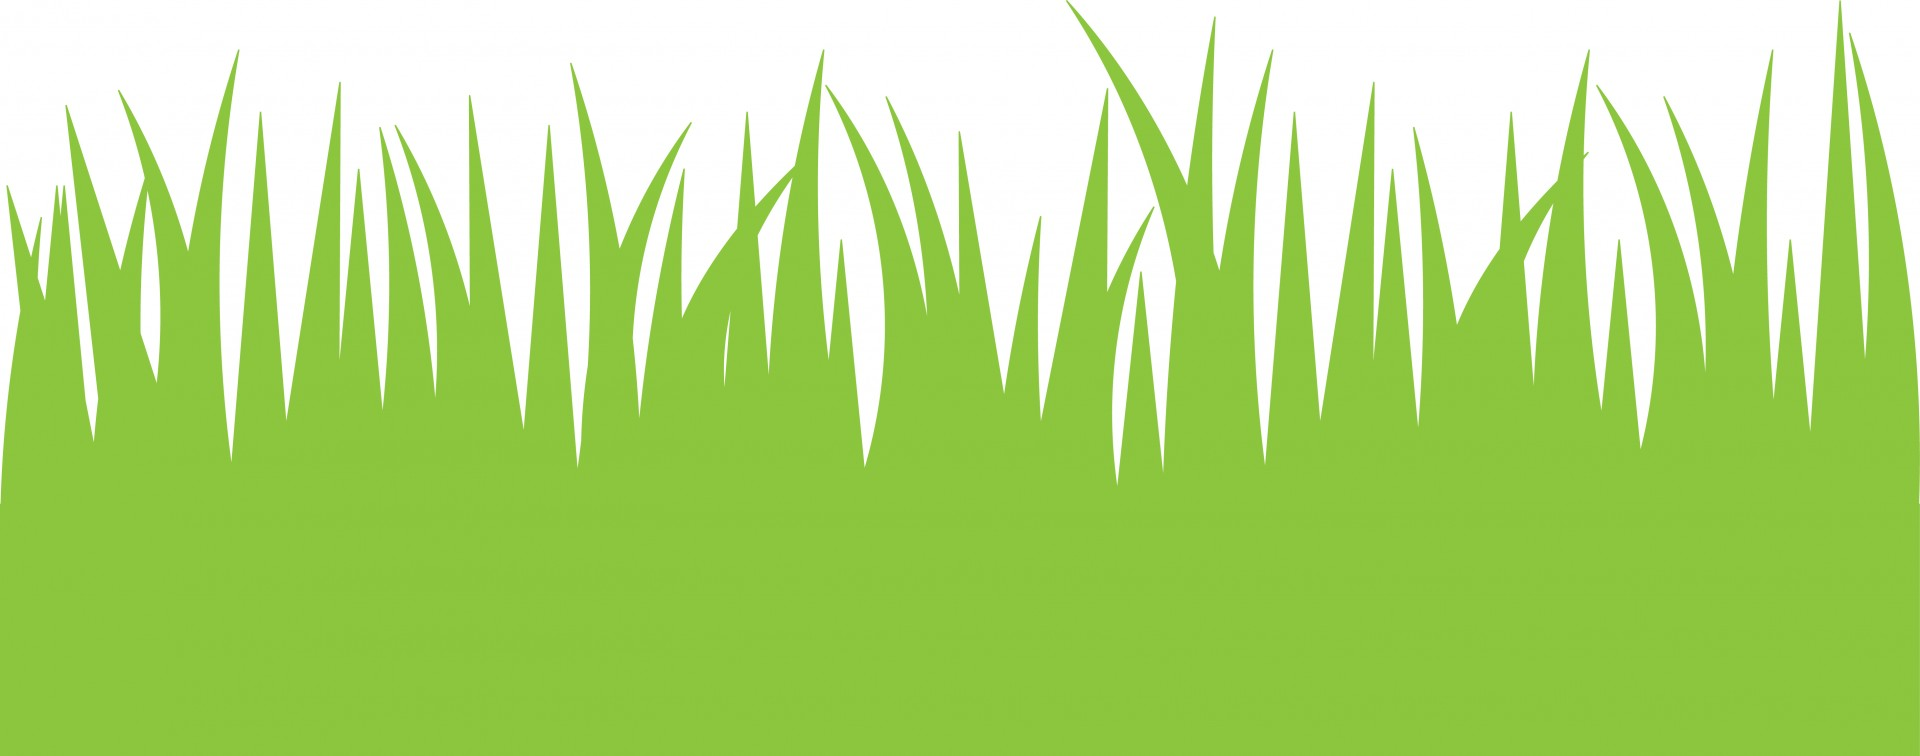 Feilds clipart lawn Stock Green domain pictures Pictures